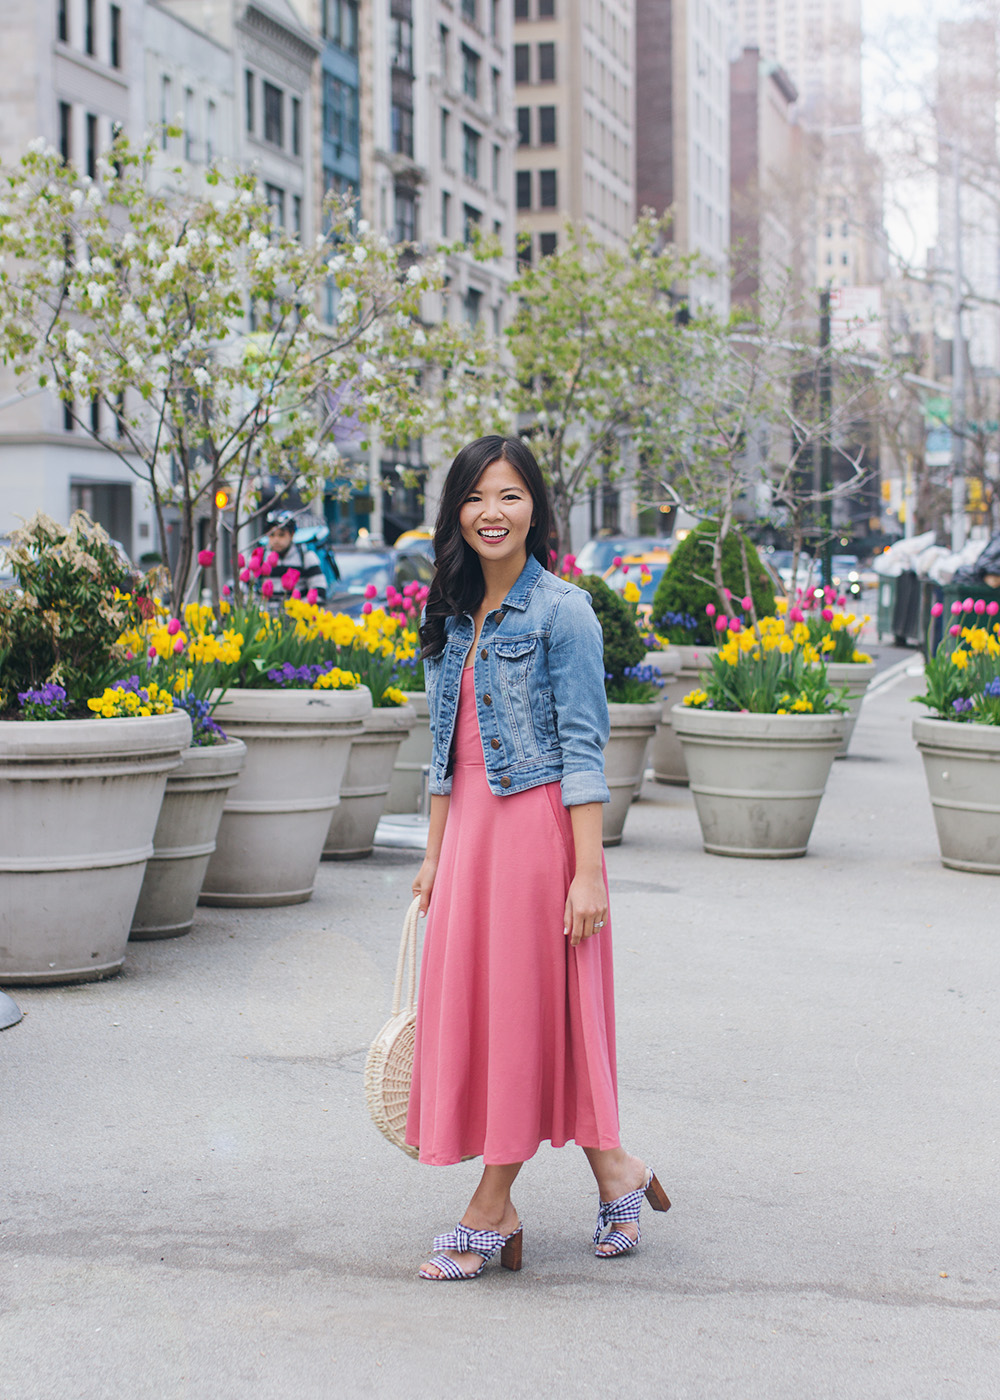 Casual Spring Outfit / Pink Dress & Denim Jacket